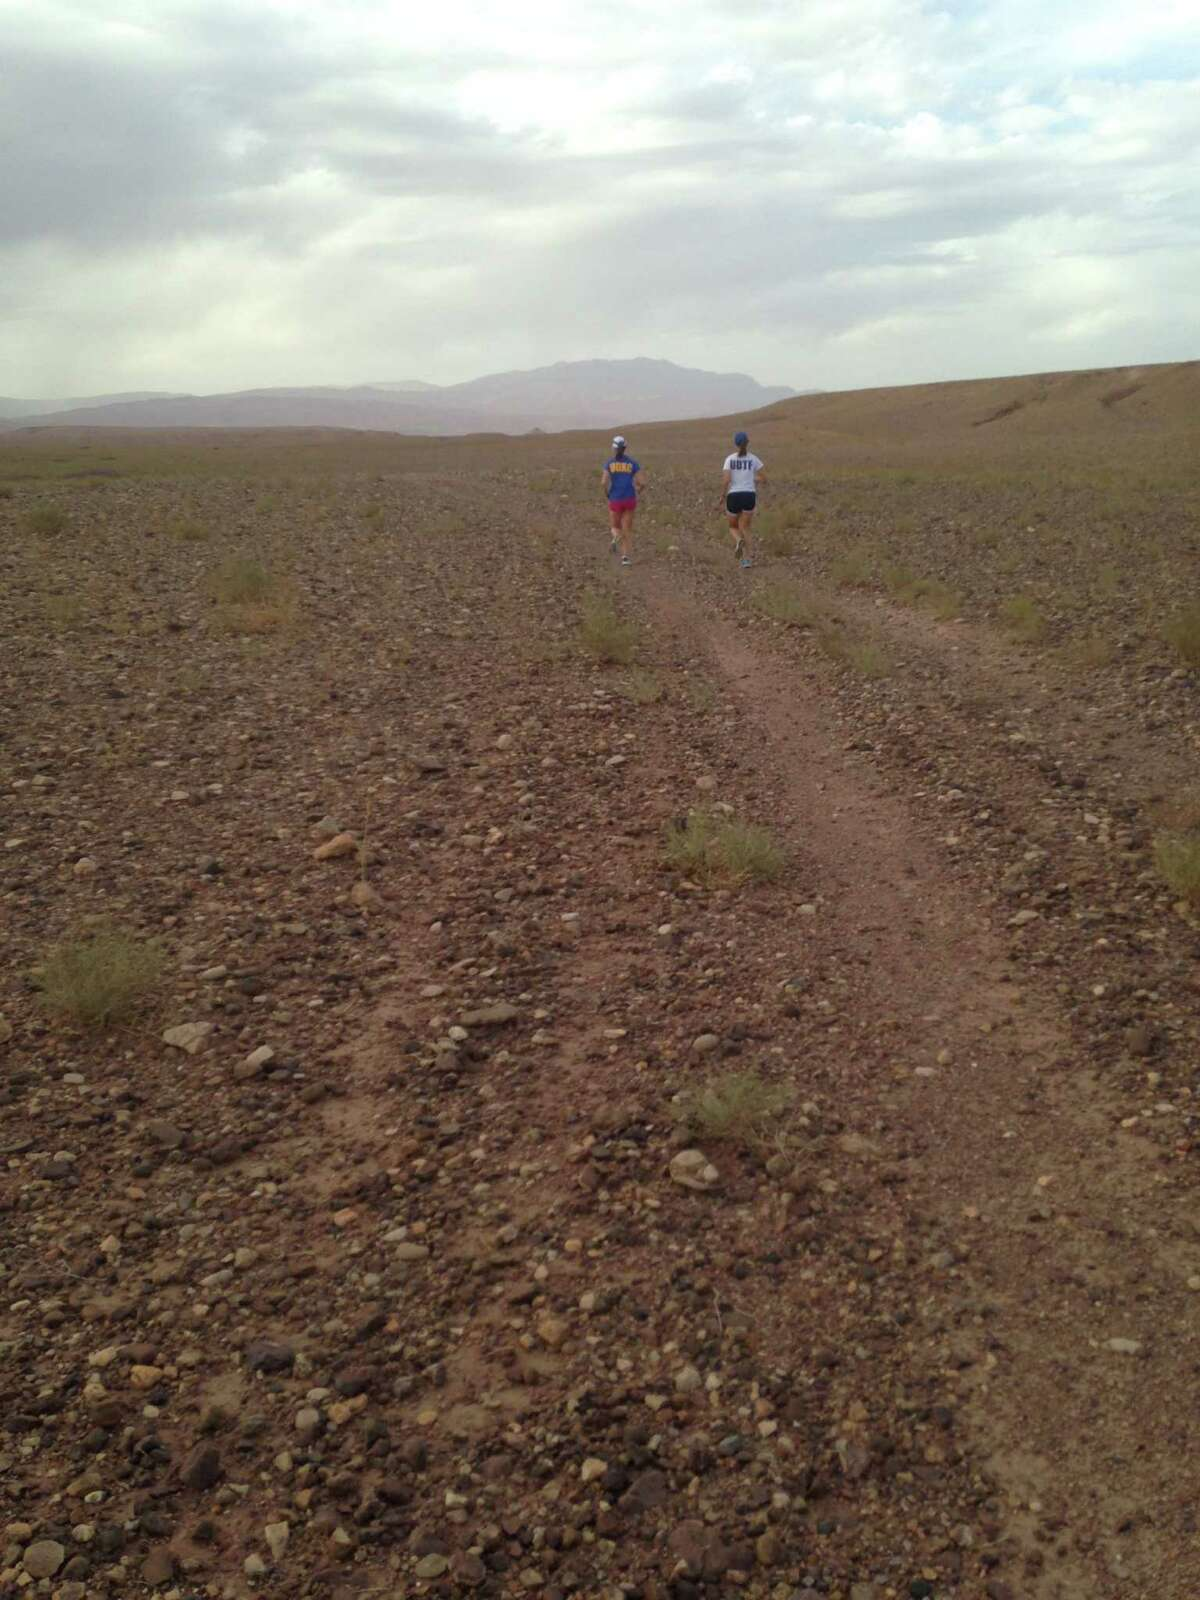 Nora Reynolds and Elizabeth Clinton run during a trip to Morocco in August to prepare for a running and leadership camp for the women there in January. (Courtesy of Nora Reynolds)